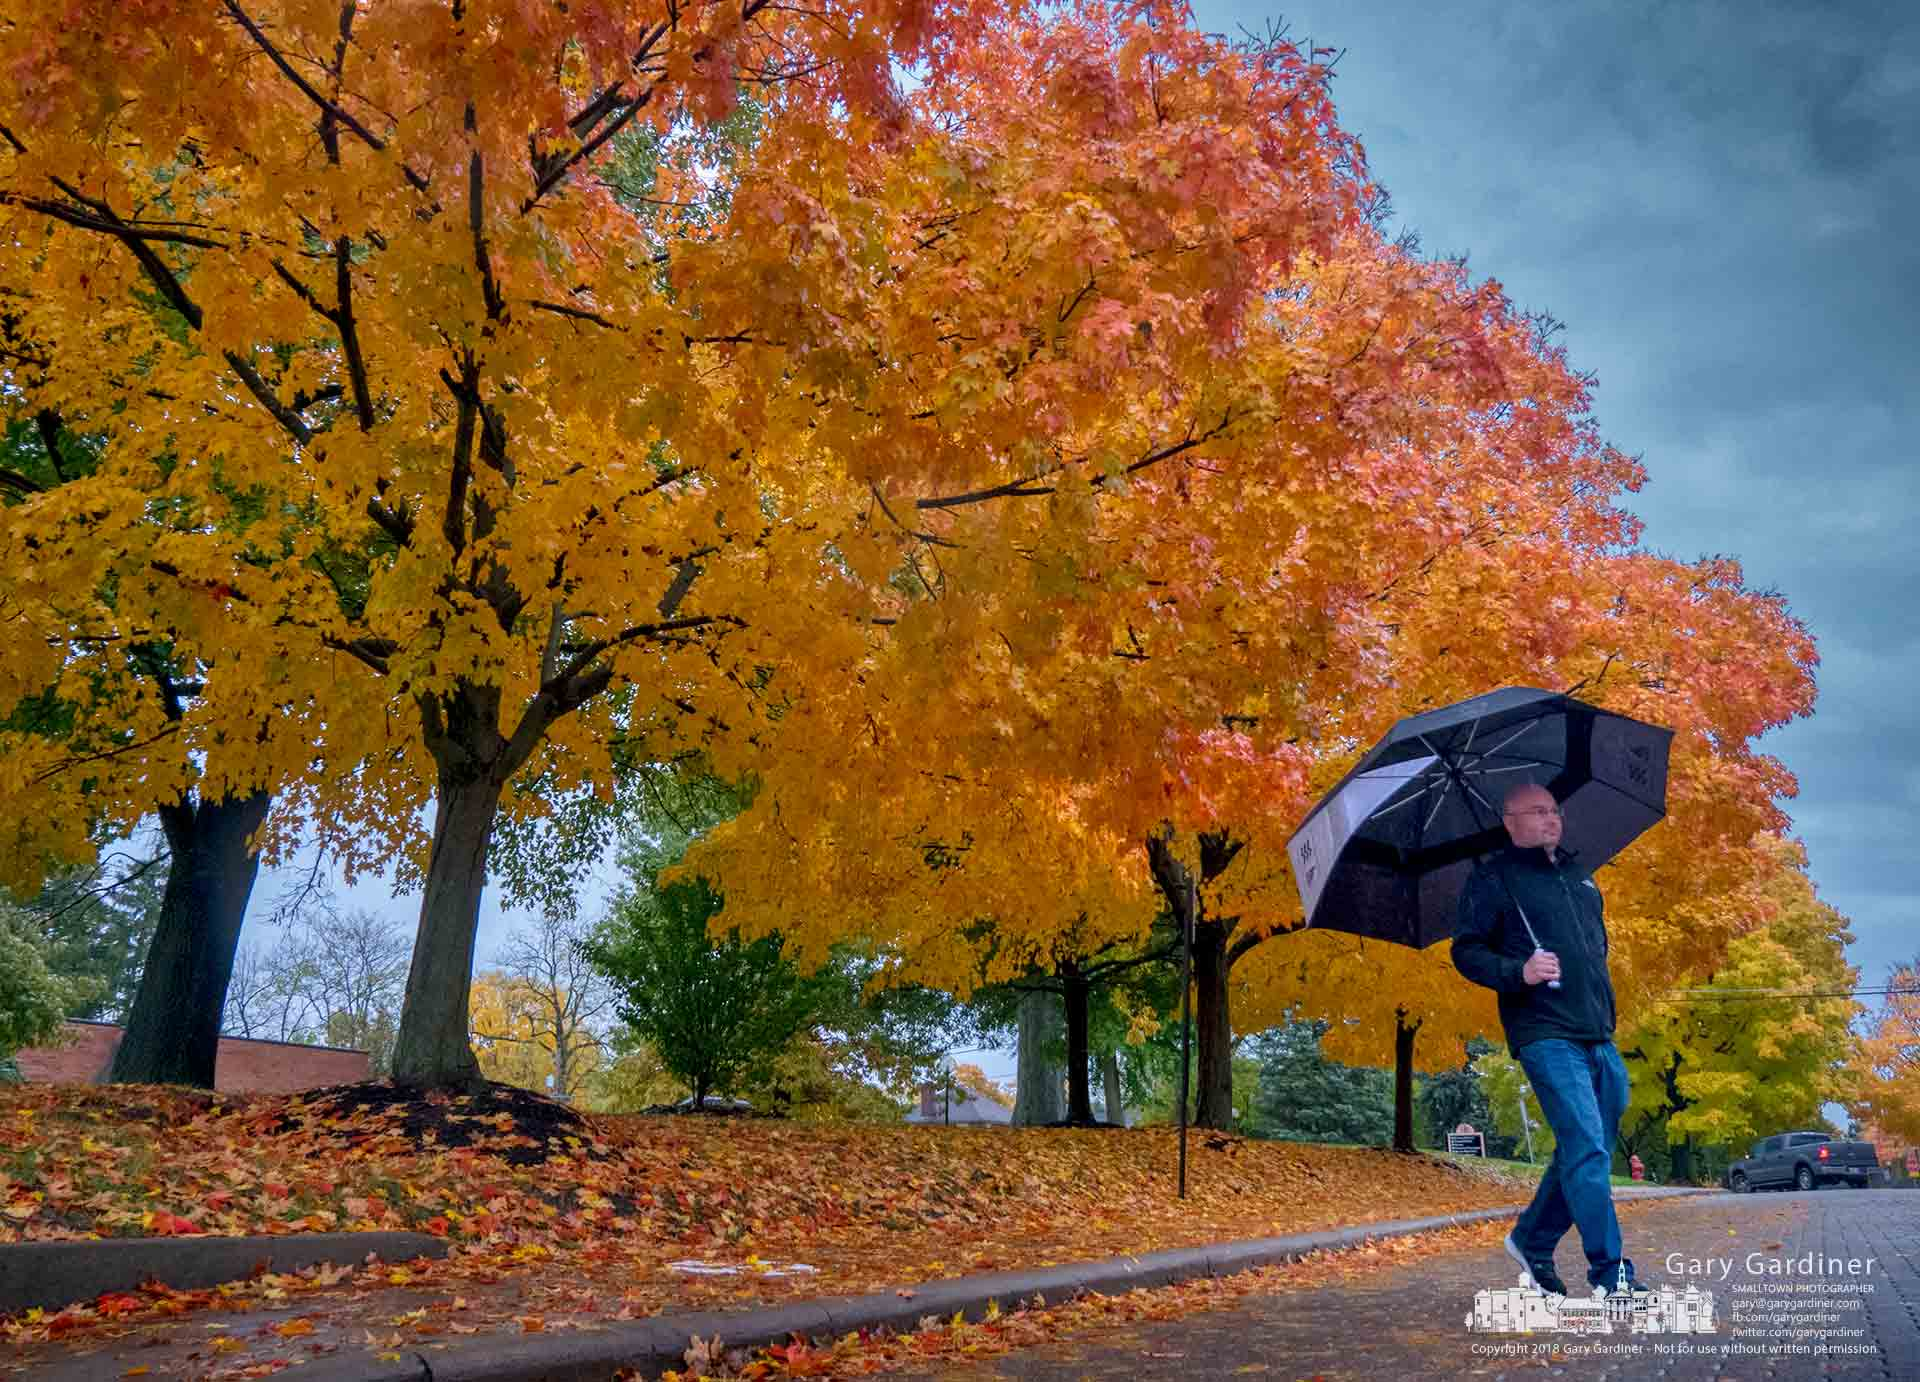 A man carrying an umbrella crosses Grove Street on the Otterbein University campus after making part of his travels under the umbrella of maple trees turned to gold in the fall. My Final Photo for Nov. 1, 2018.